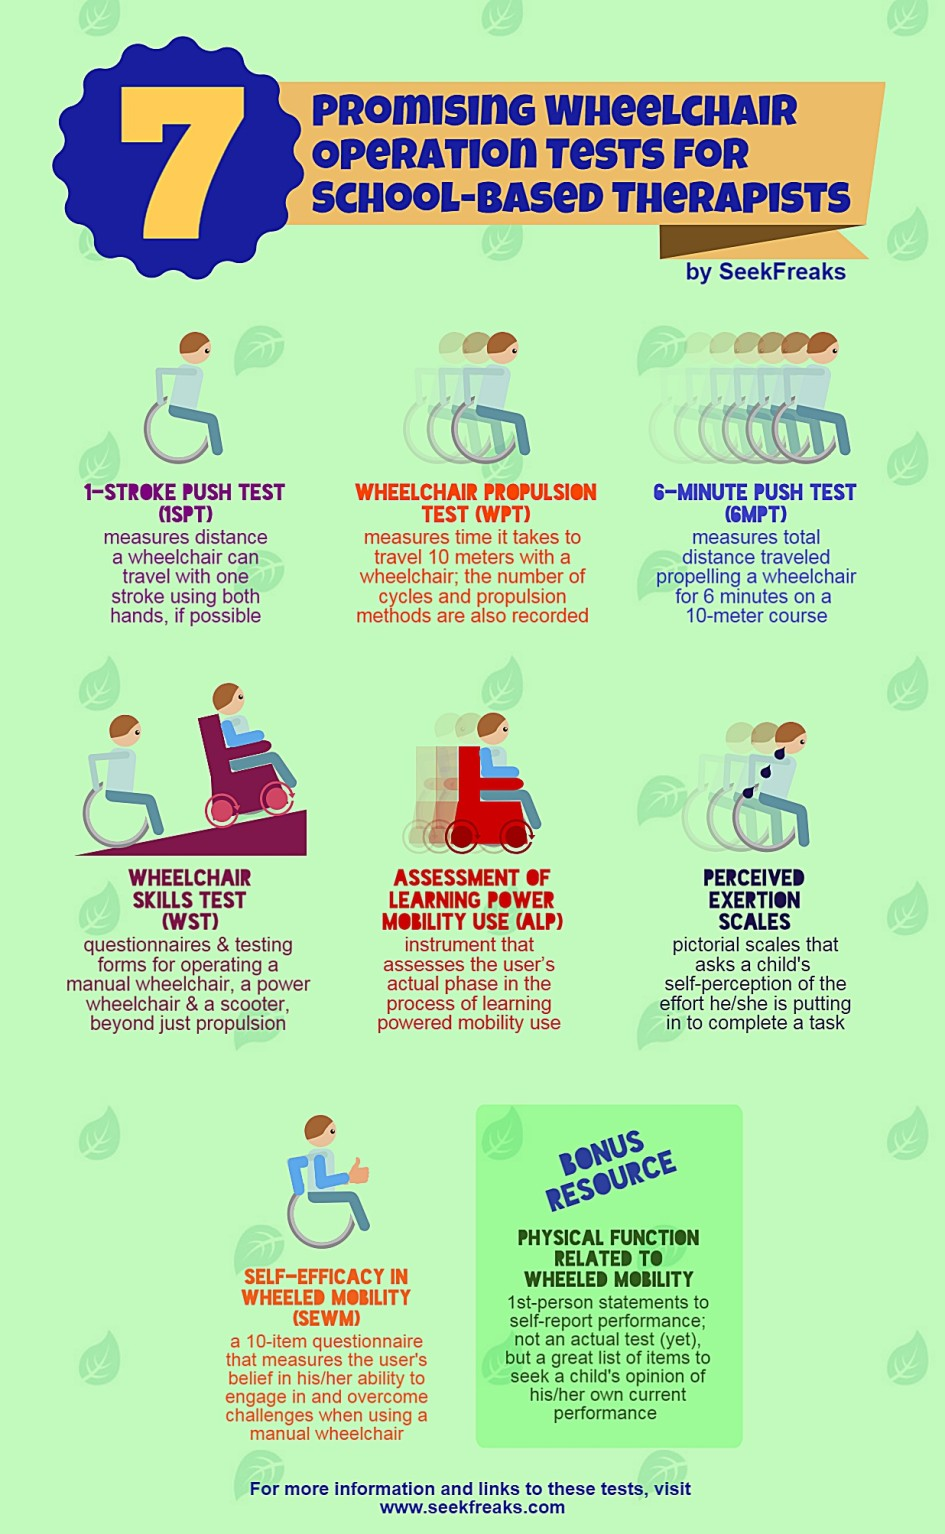 RESOURCE: 7 Promising Wheelchair Operation Tests for School-based Therapists